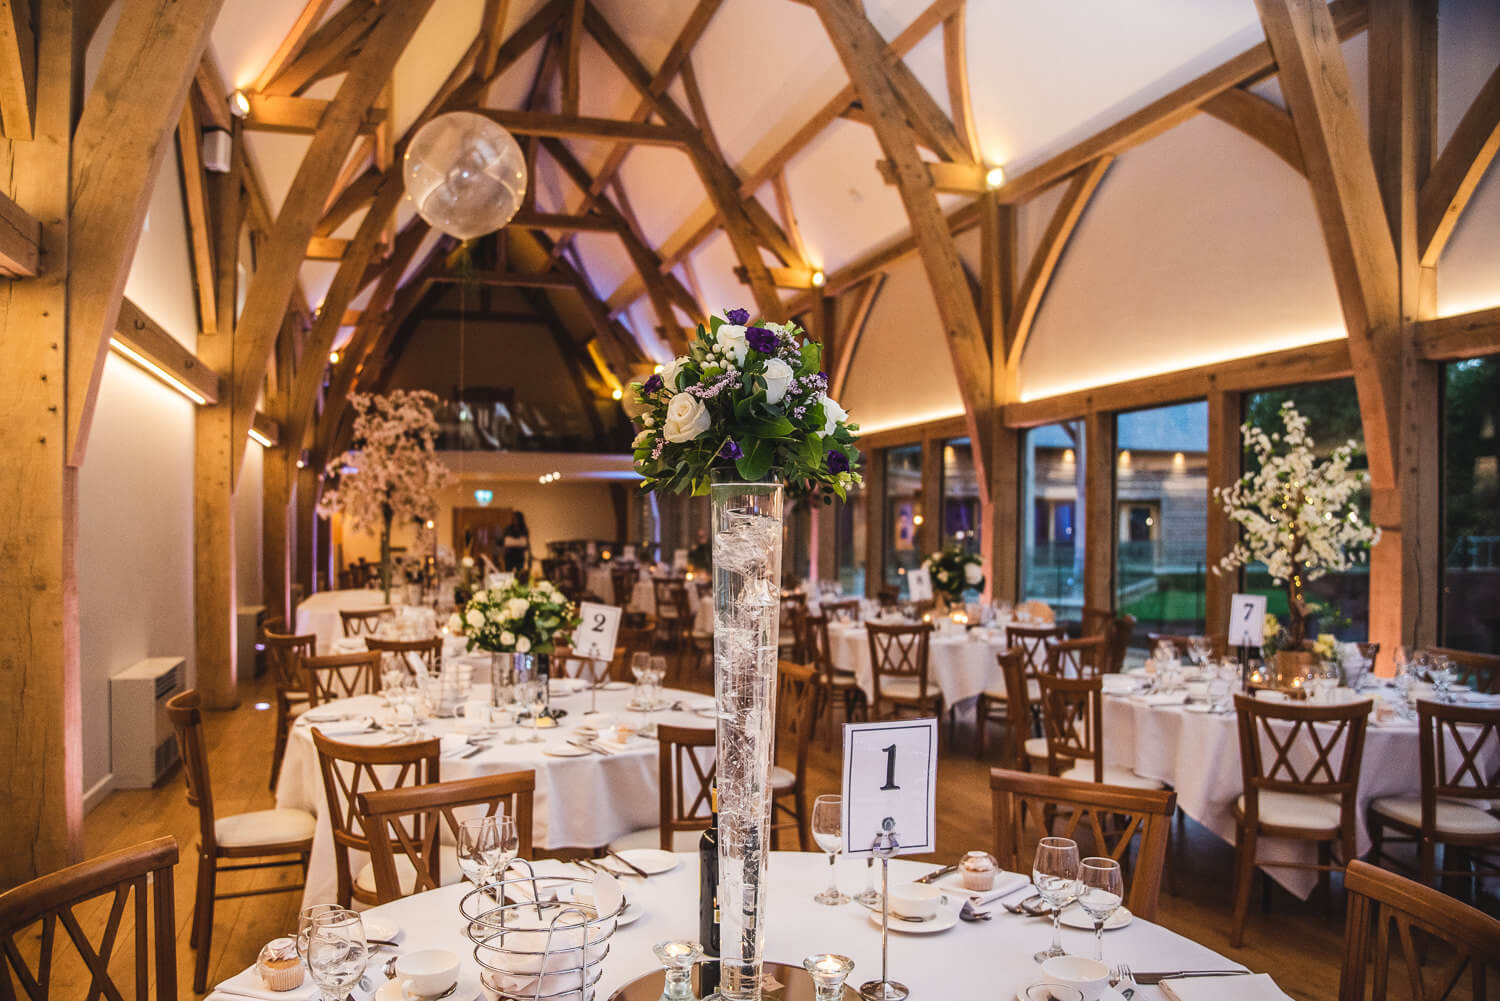 What's Included in the Venue Hire Price at The Mill Barns